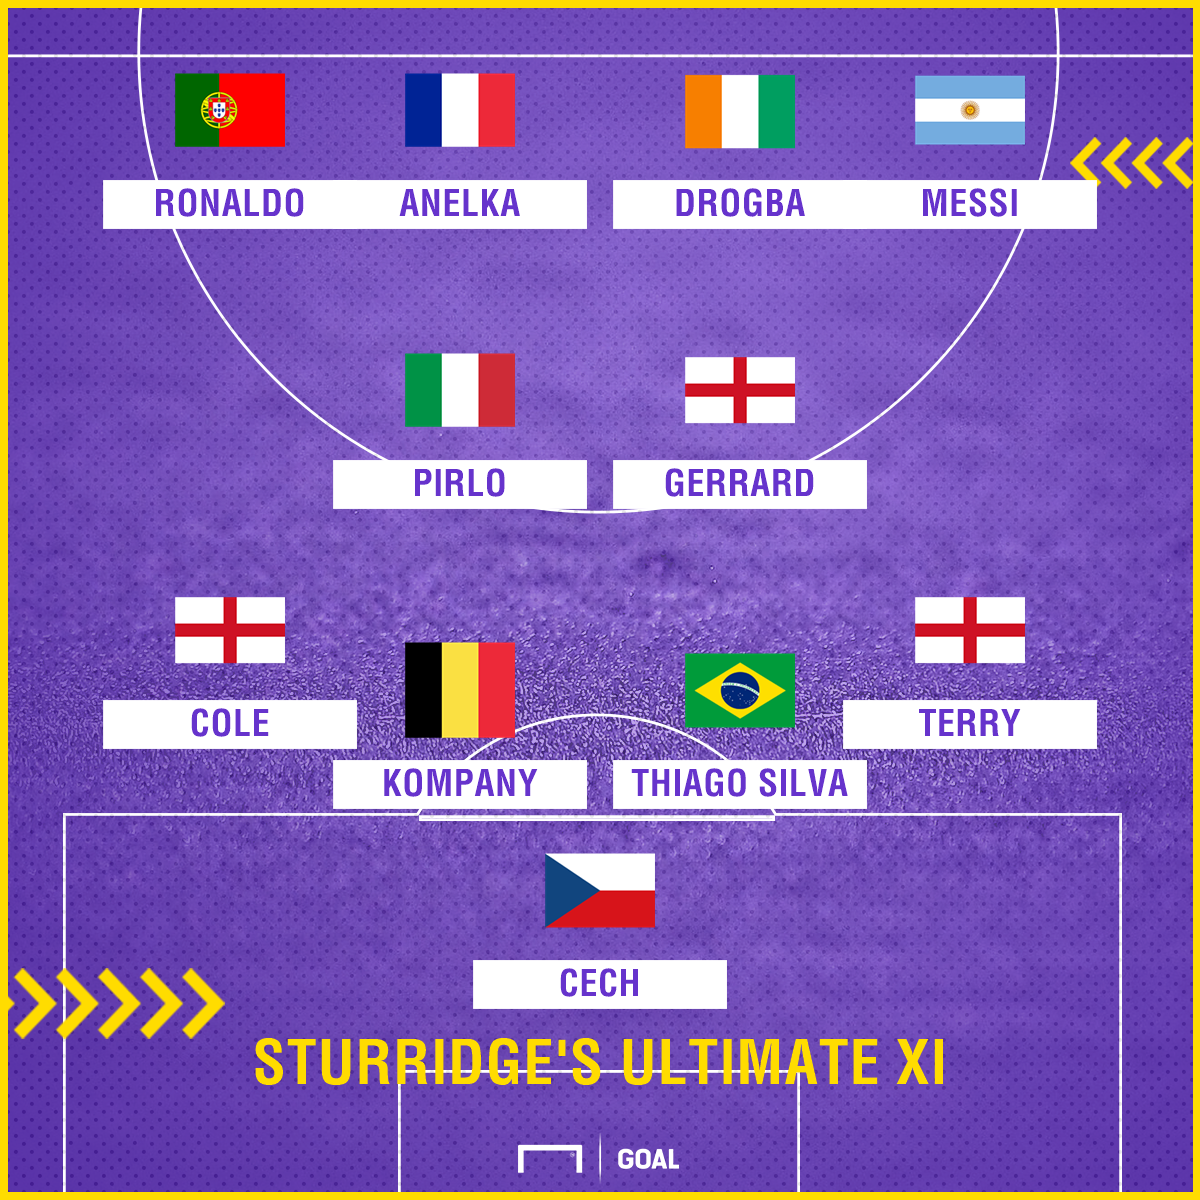 Daniel Sturridge Ultimate XI